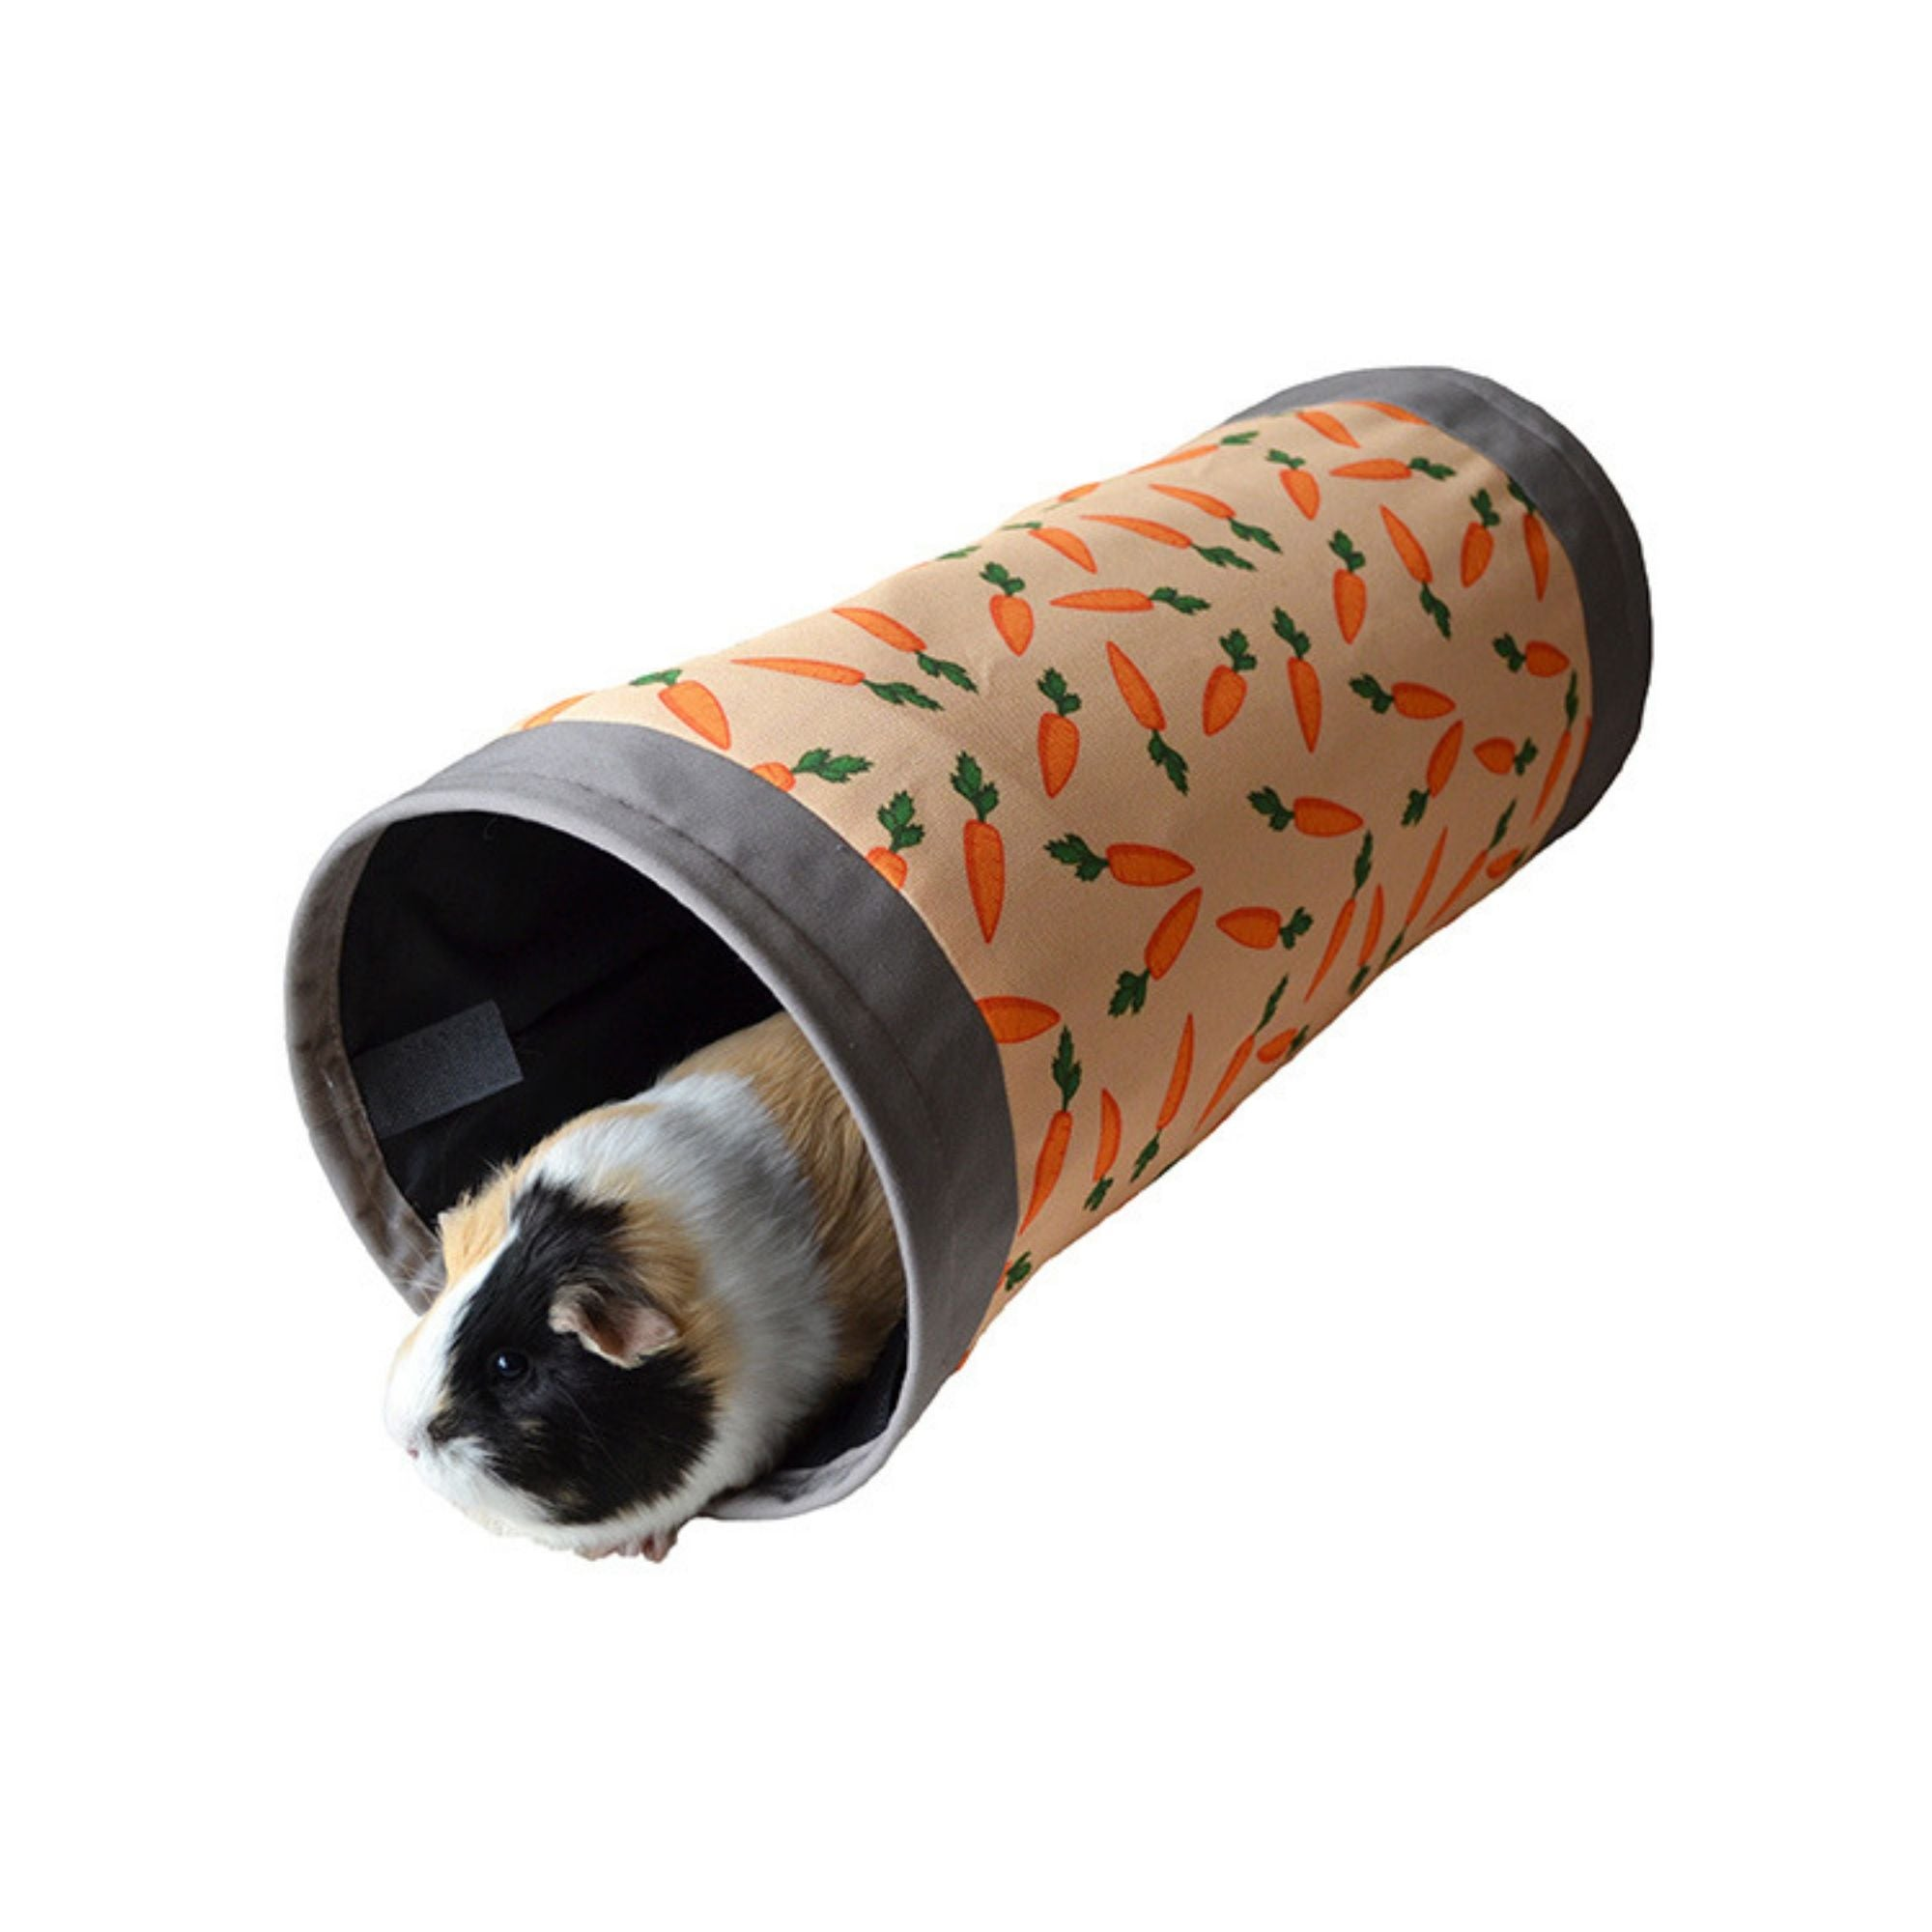 Rosewood Carrot Fabric Tunnel for Guinea Pigs | Barks & Bunnies